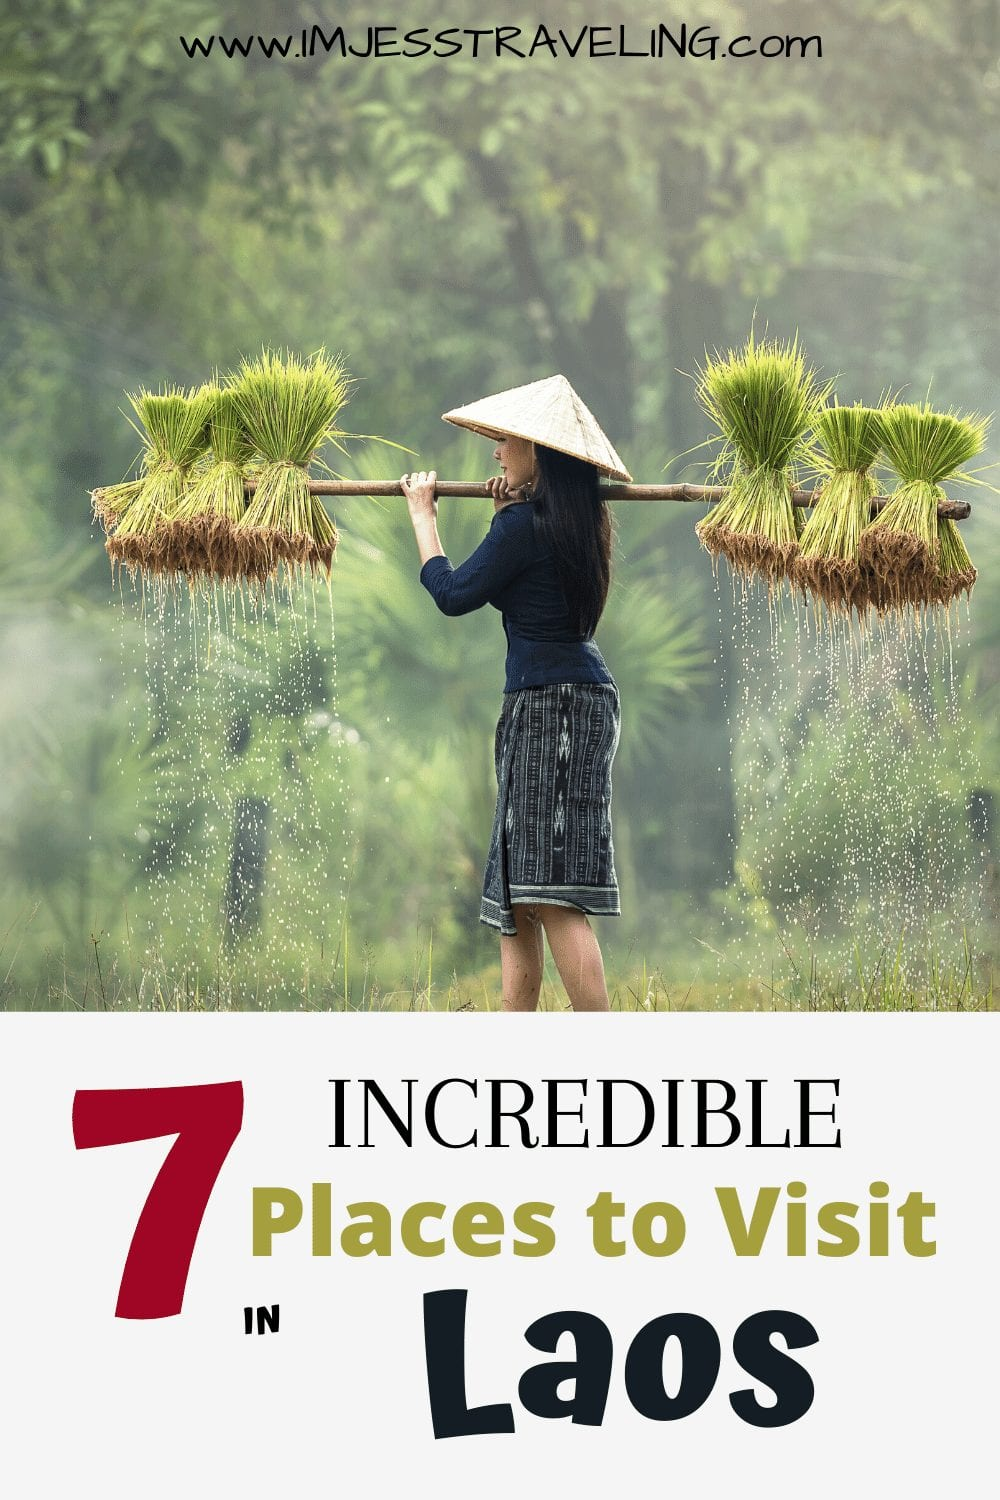 Unbelievable Places to Visit in Laos with I'm Jess Traveling